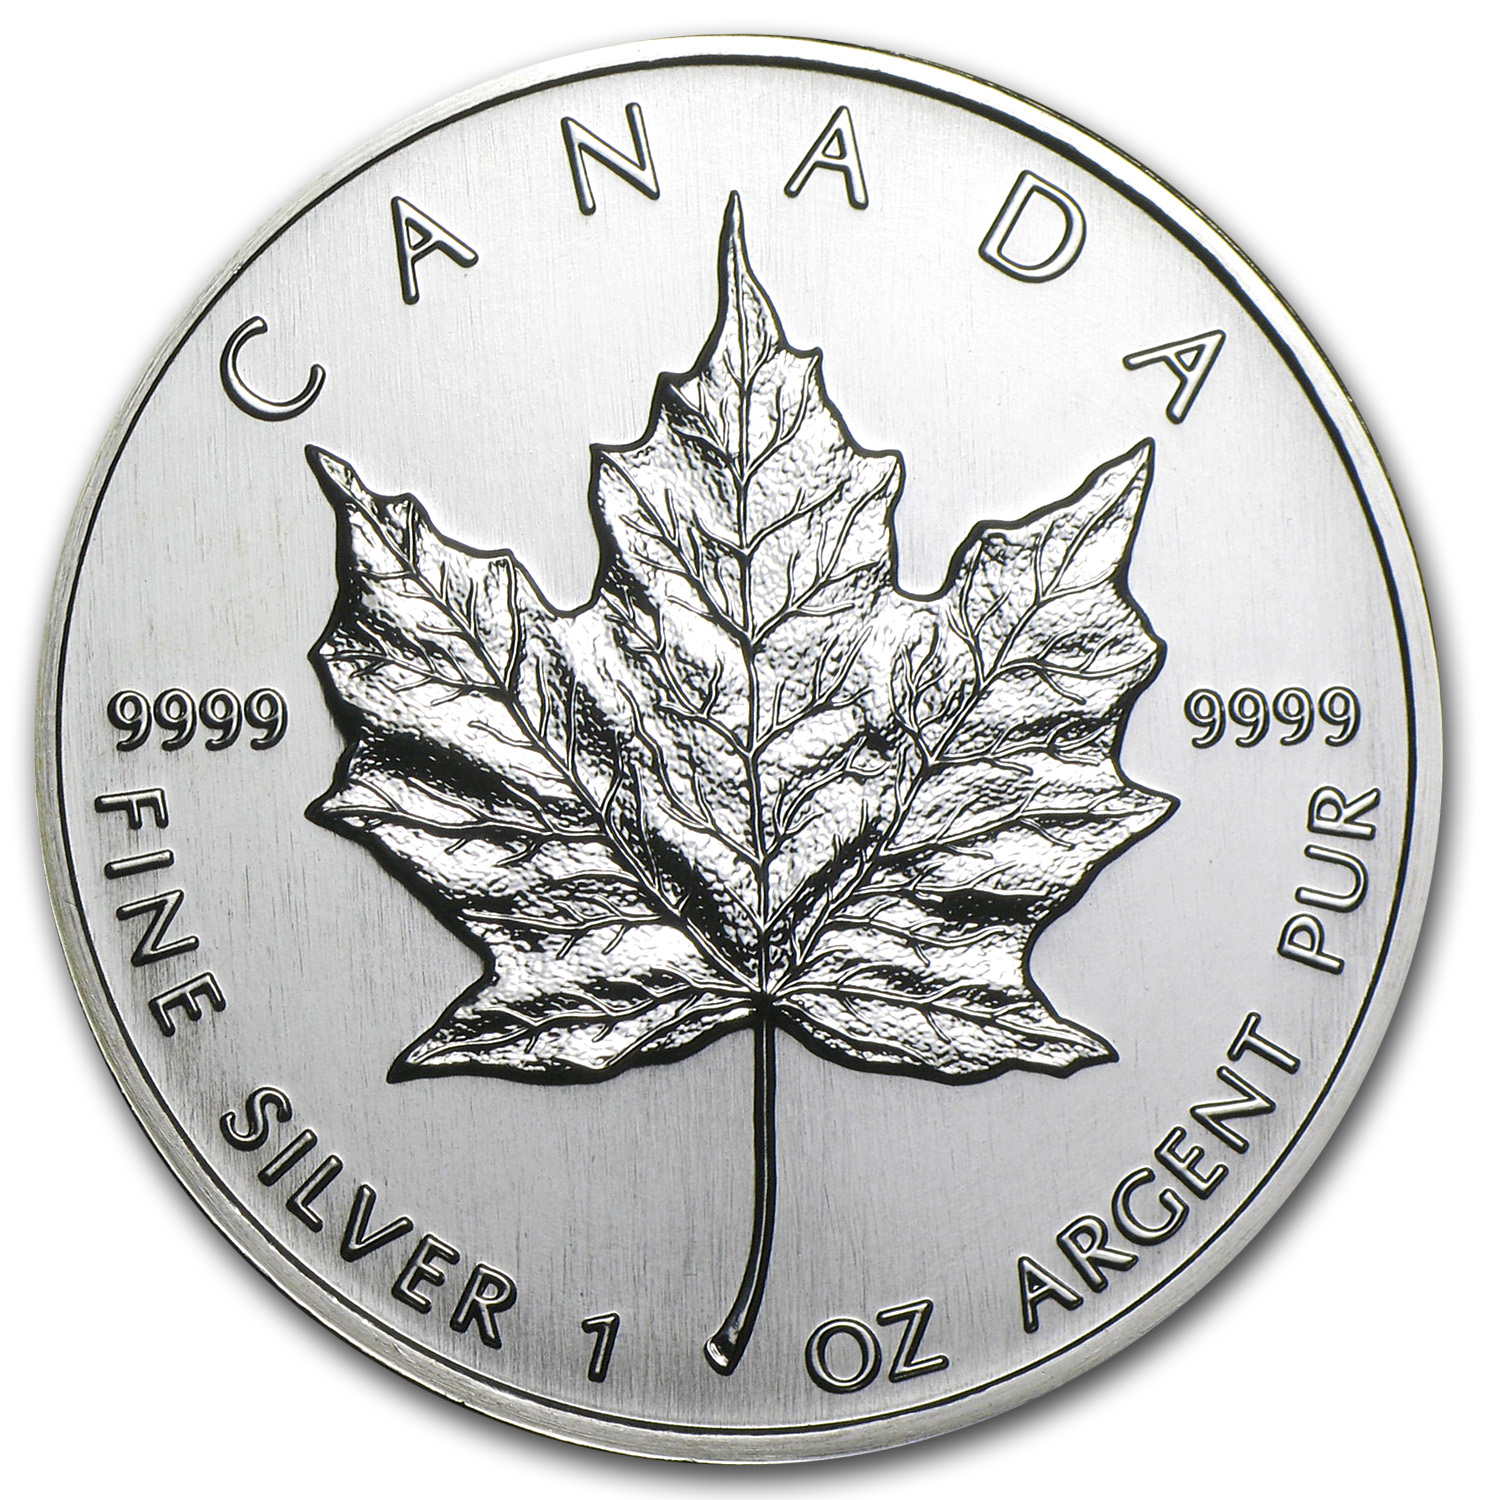 1994 1 oz Silver Canadian Maple Leaf BU